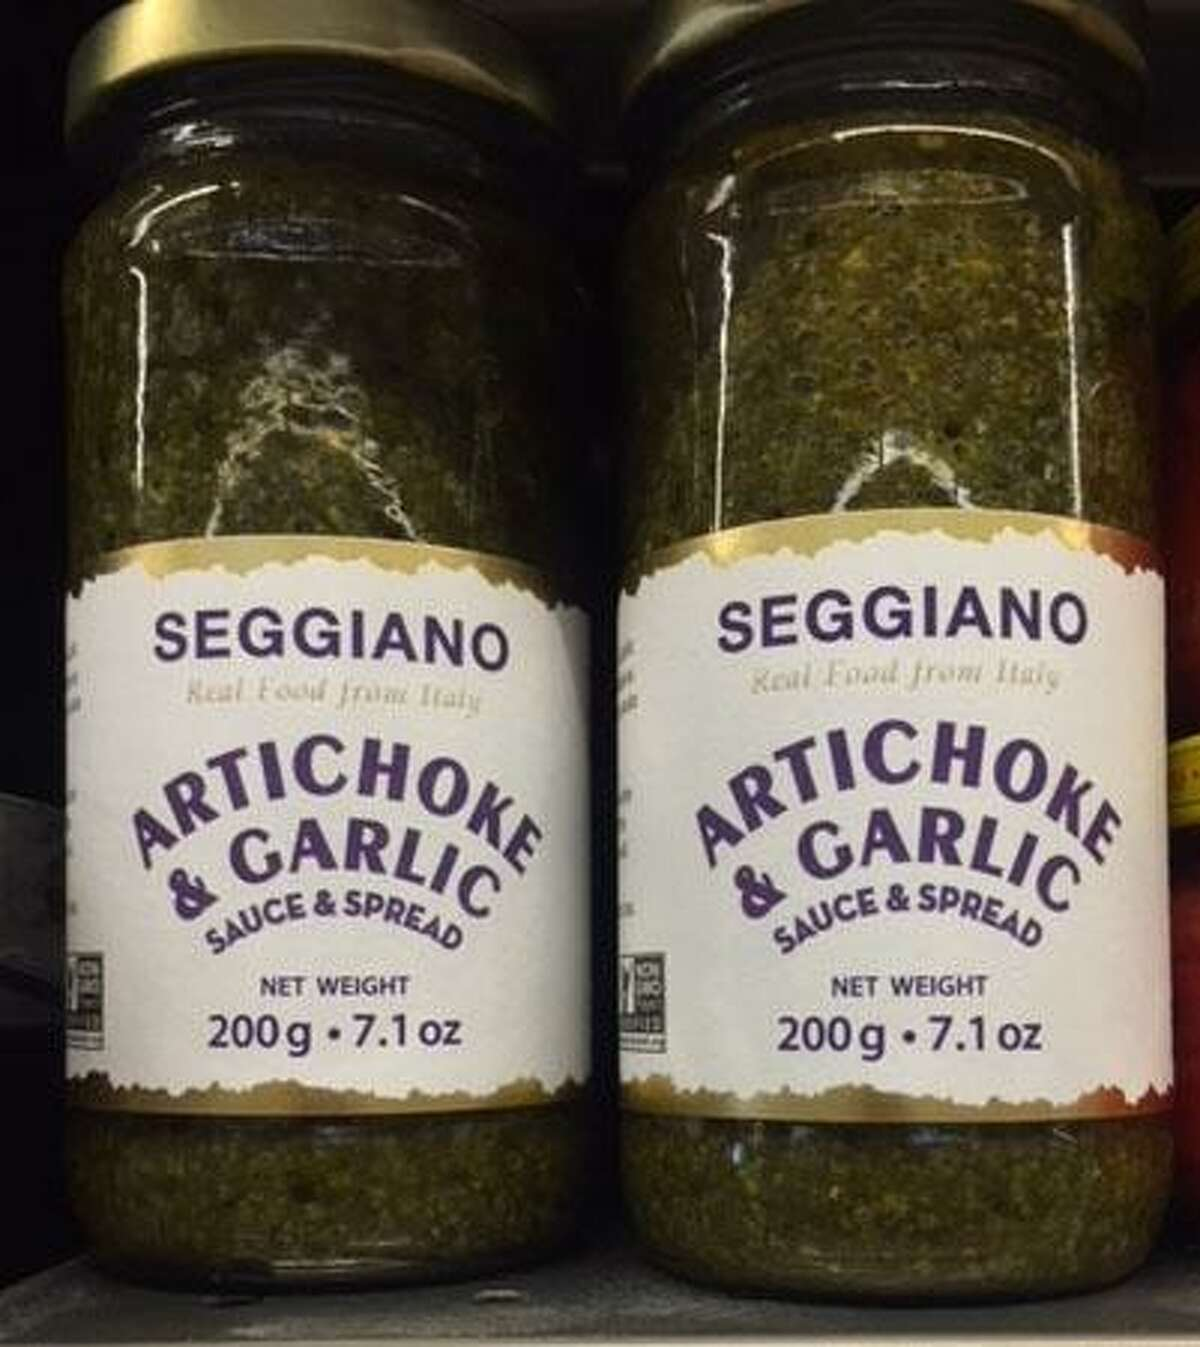 Seggiano USA, Inc. of Cheyenne, Wy. is voluntarily recalling Tuscan Kale Pesto sold in multiple states, including Connecticut, because the labels do not declare tree nuts (cashews). Photo courtesy of the U.S. Food and Drug Administration.